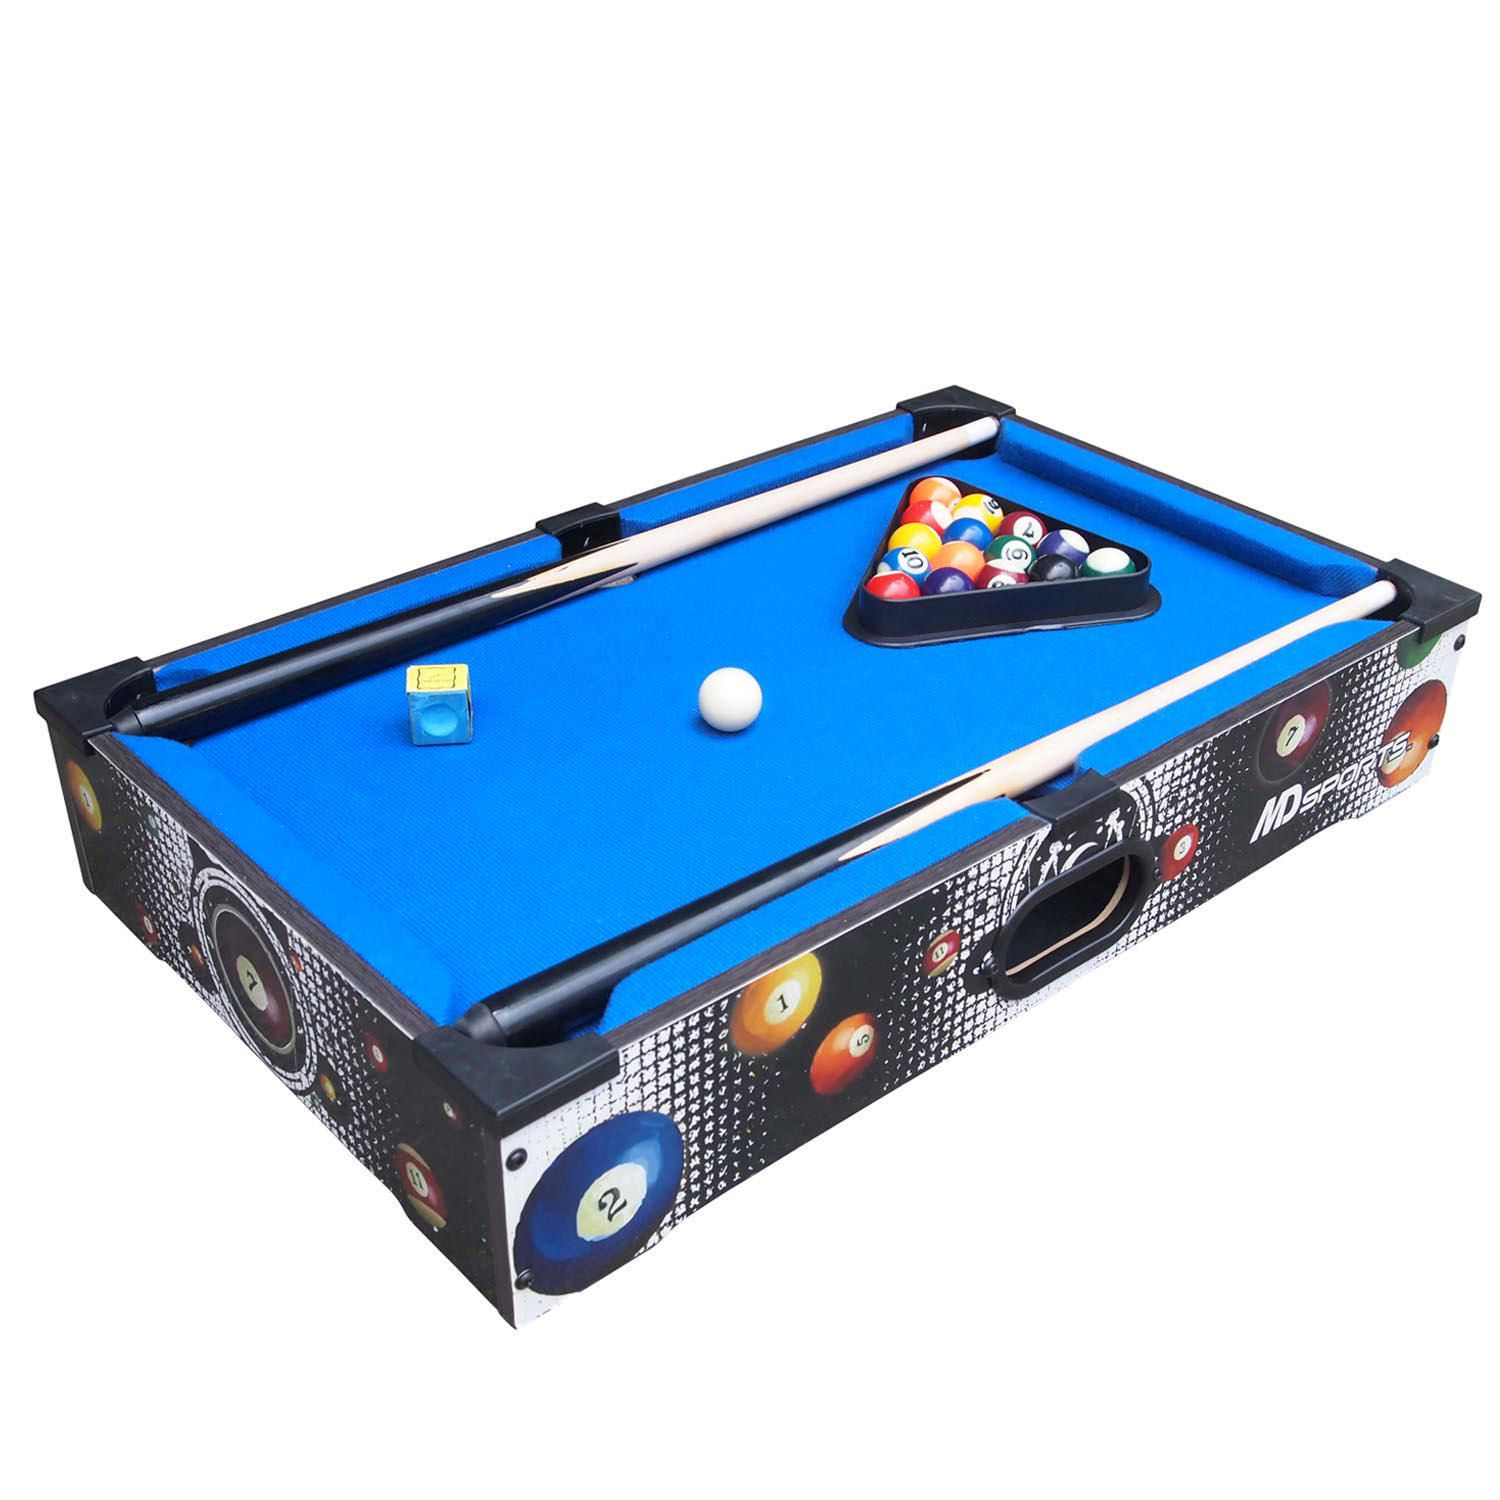 Billiards pool tables walmart canada medal sports md sports 20 table top billiard game greentooth Images